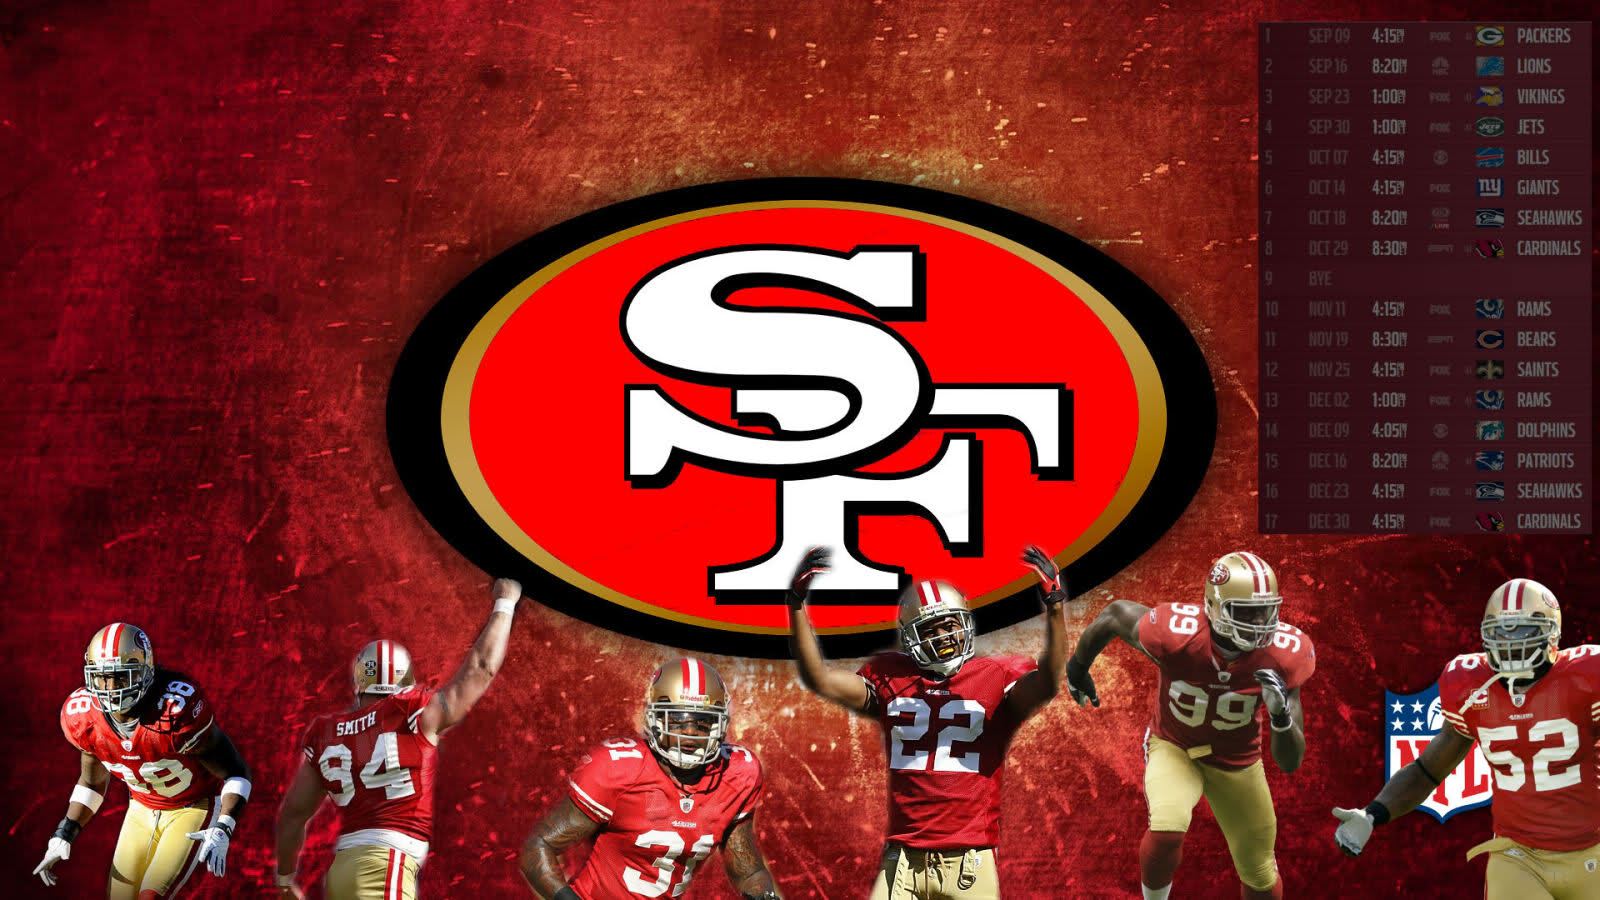 49ers Wallpaper For Desktop 1600x900